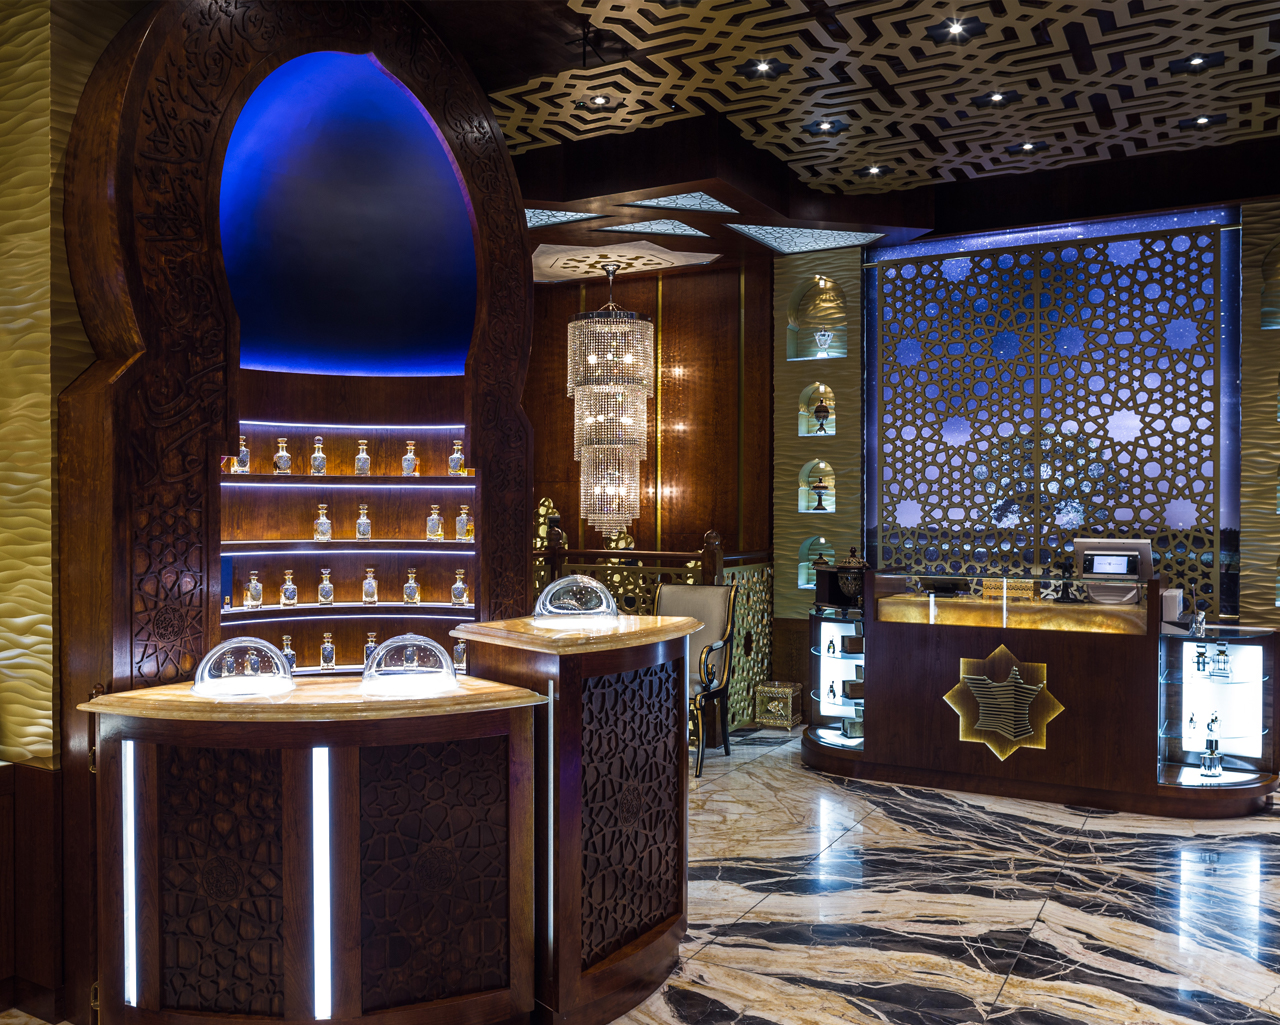 TPS Interiors - Arabian Oud shop fit out